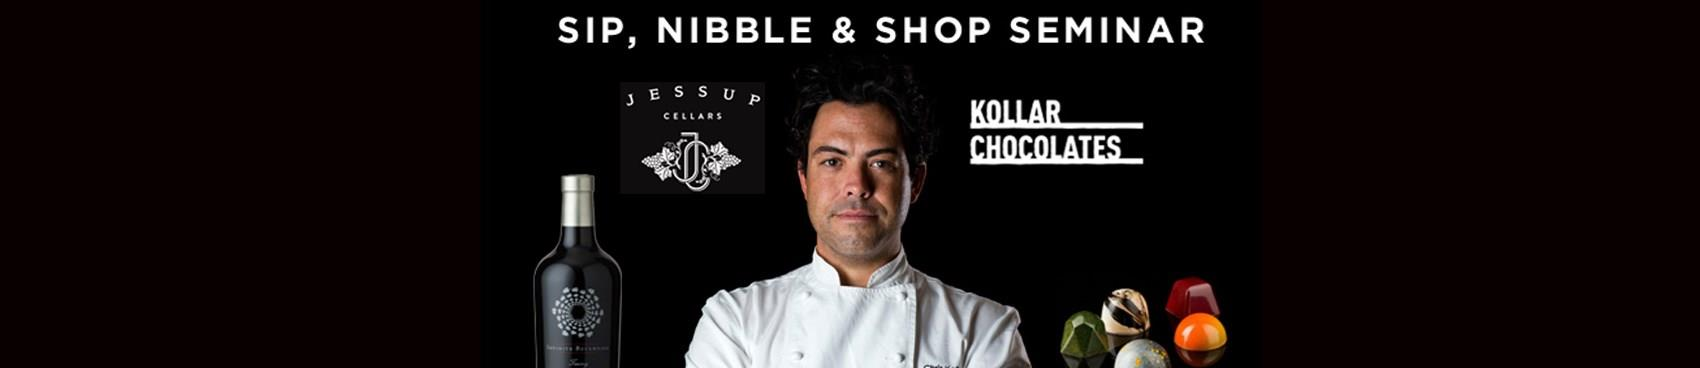 Purchase Tickets to Chocolate Seminar: Sip, Nibble & Shop with Famed Chocolatier Chris Kollar at Jessup Cellars on CellarPass